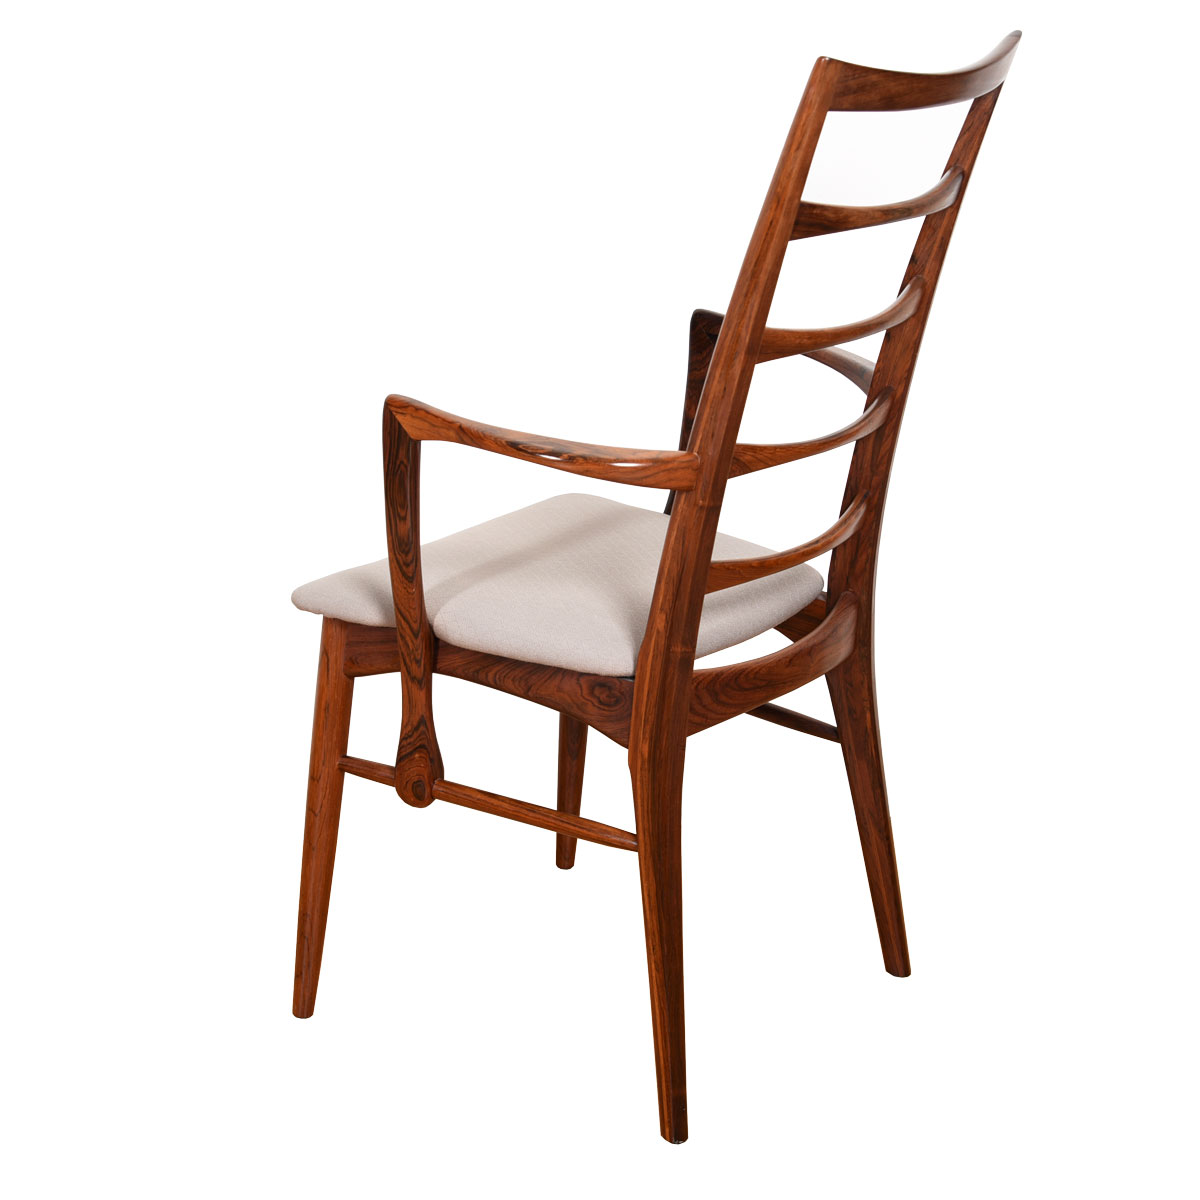 Set of 4 Koefoeds Hornslet Dining Chairs (2 Arm + 2 Side) in Rosewood